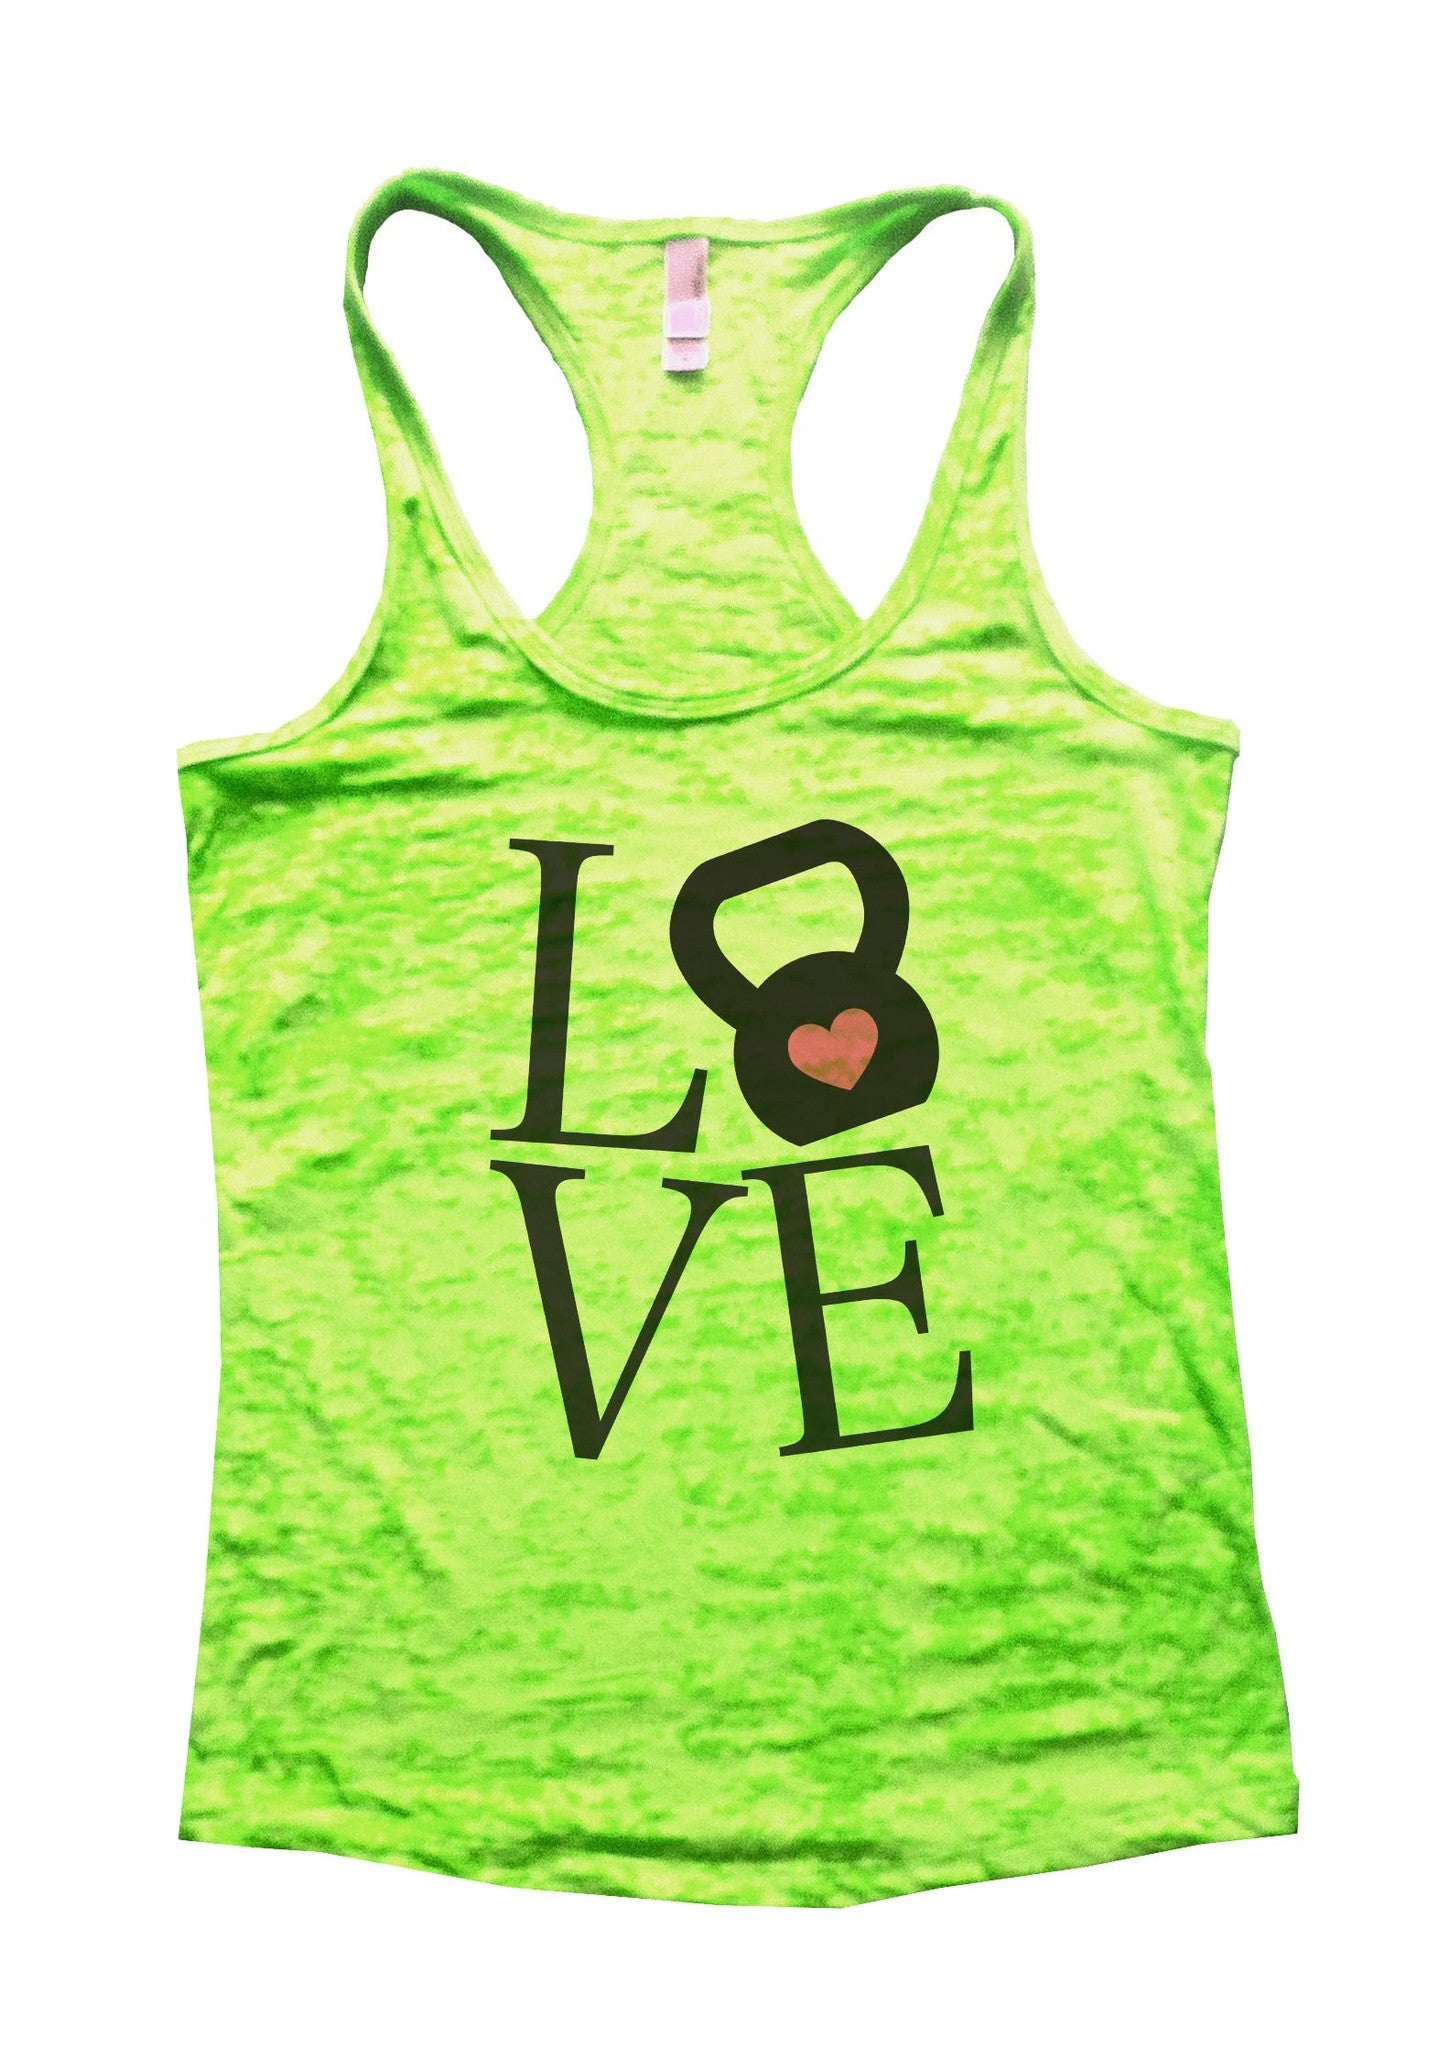 Love Burnout Tank Top By BurnoutTankTops.com - 727 - Funny Shirts Tank Tops Burnouts and Triblends  - 2